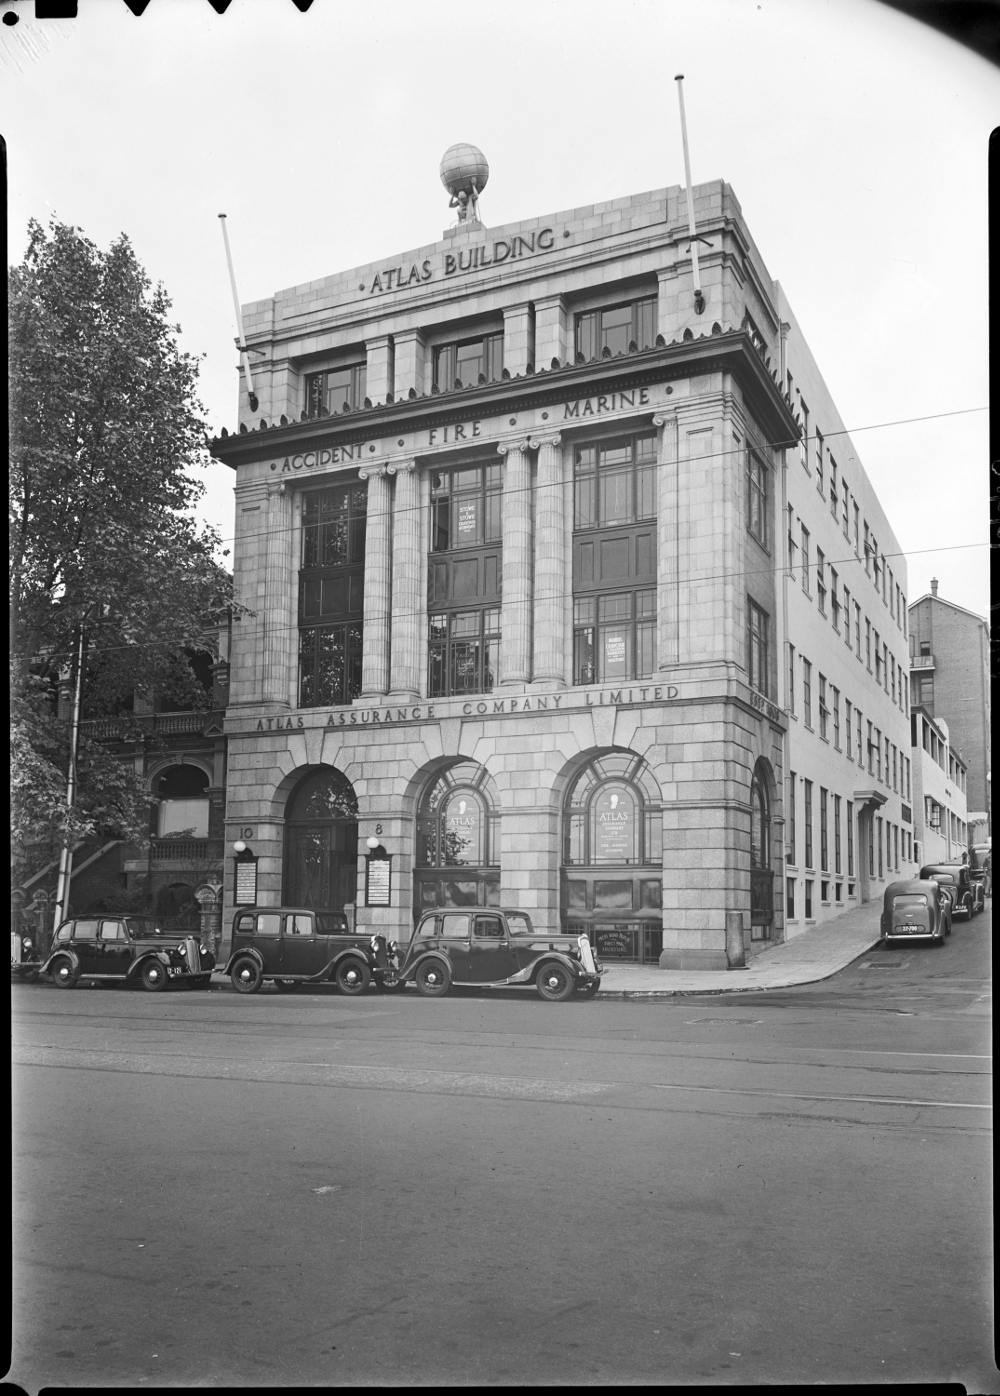 1948 Atlas Building State Library of Western Australia Image: SLWA 032787PD